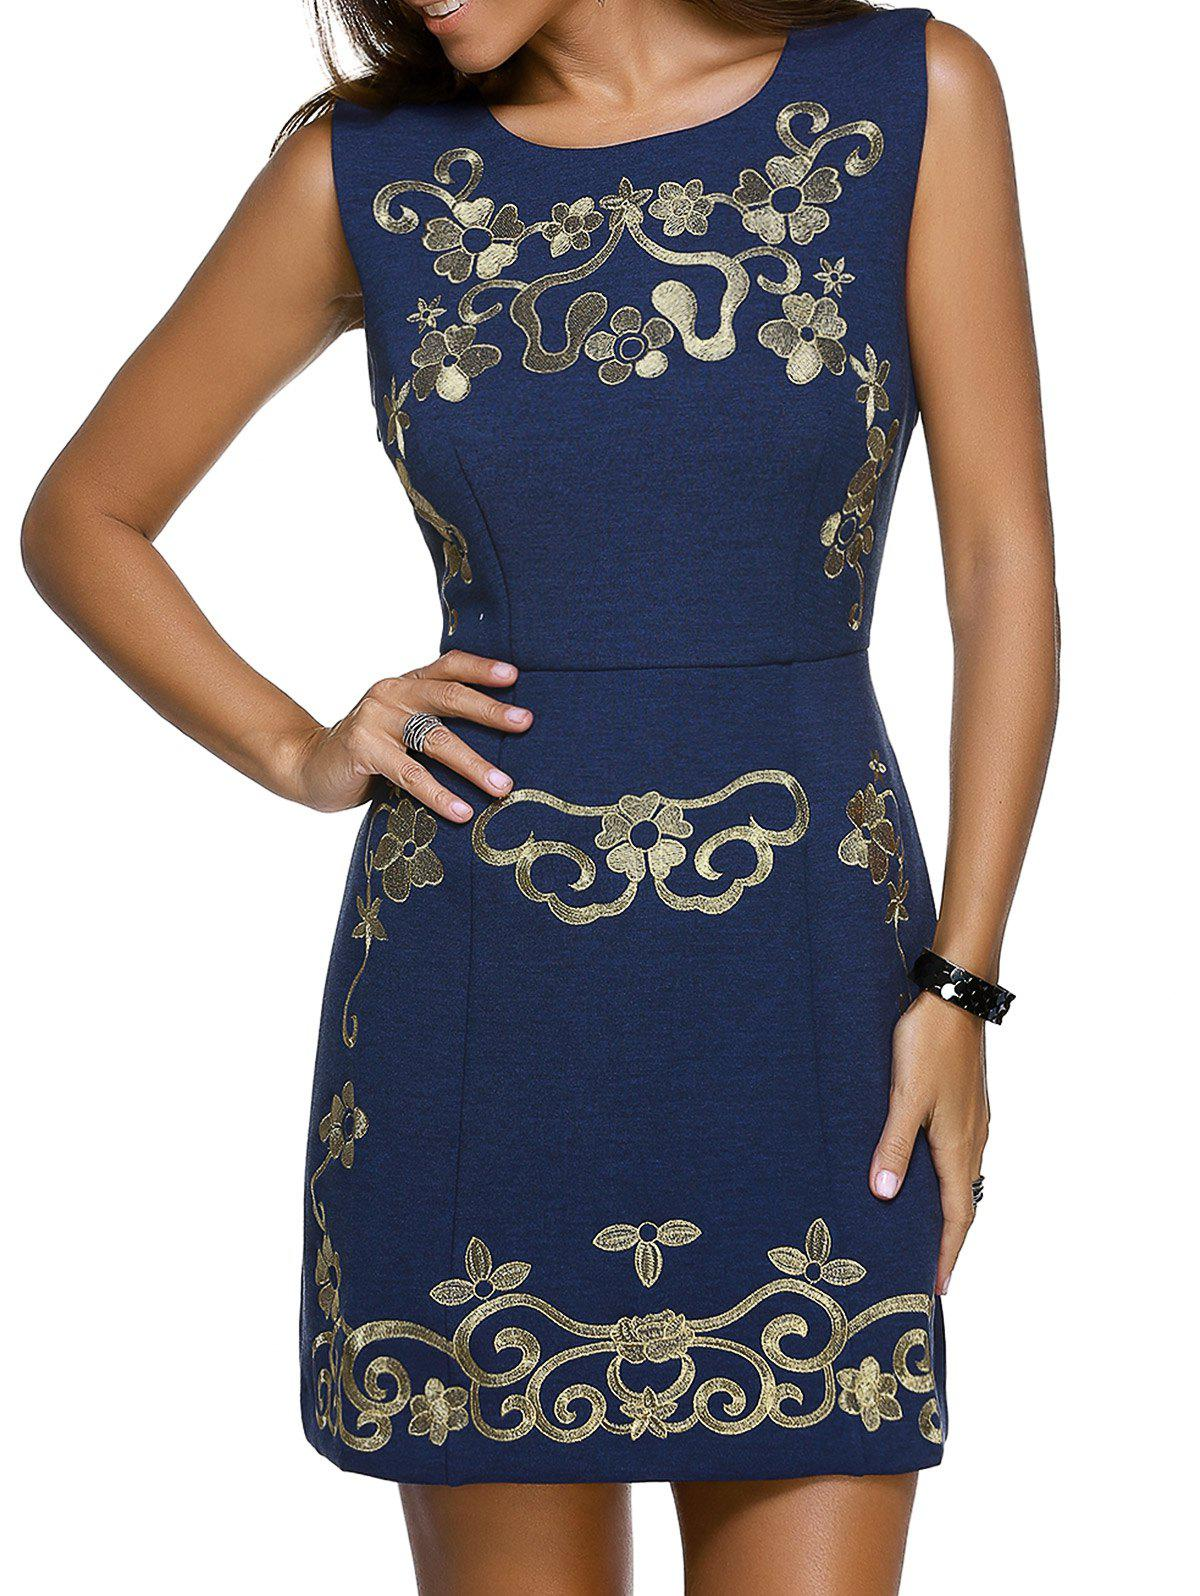 Trendy Sleeveless Round Neck Skinny Slimming Floral Embroidery Womens DressWomen<br><br><br>Size: M<br>Color: PURPLISH BLUE